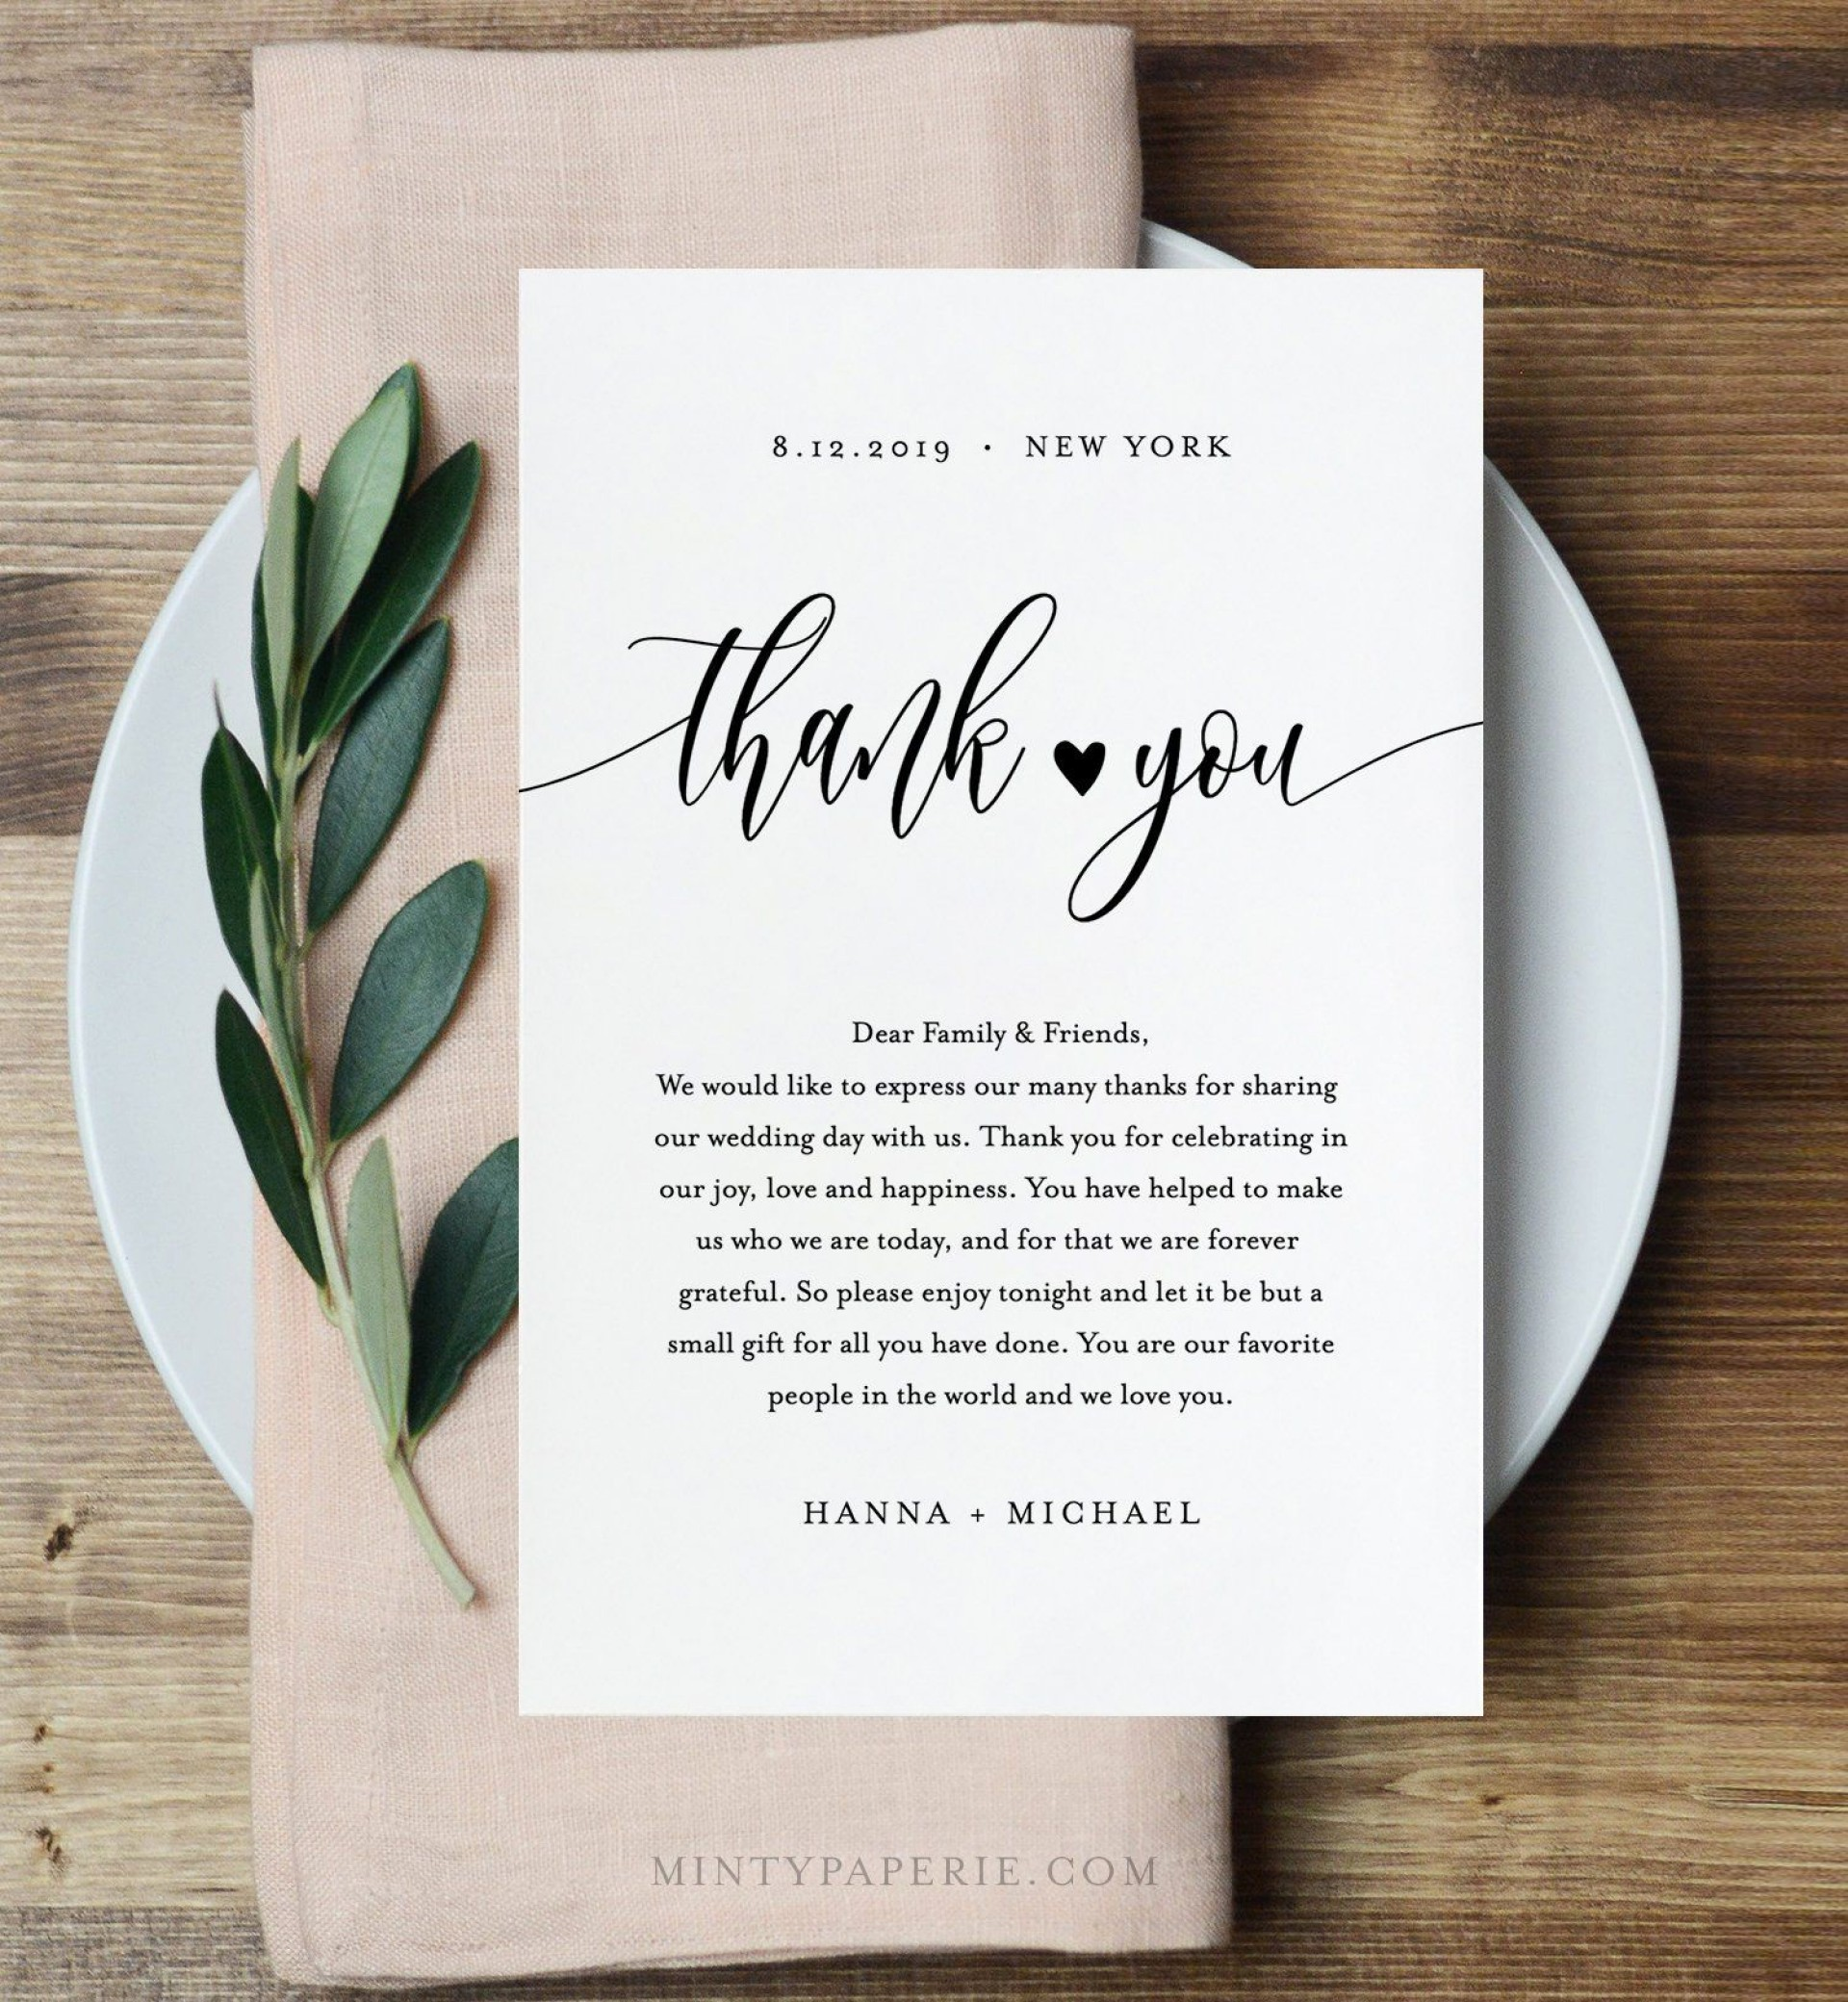 006 Unusual Thank You Note Template Wedding Idea  Card Etsy Wording1920